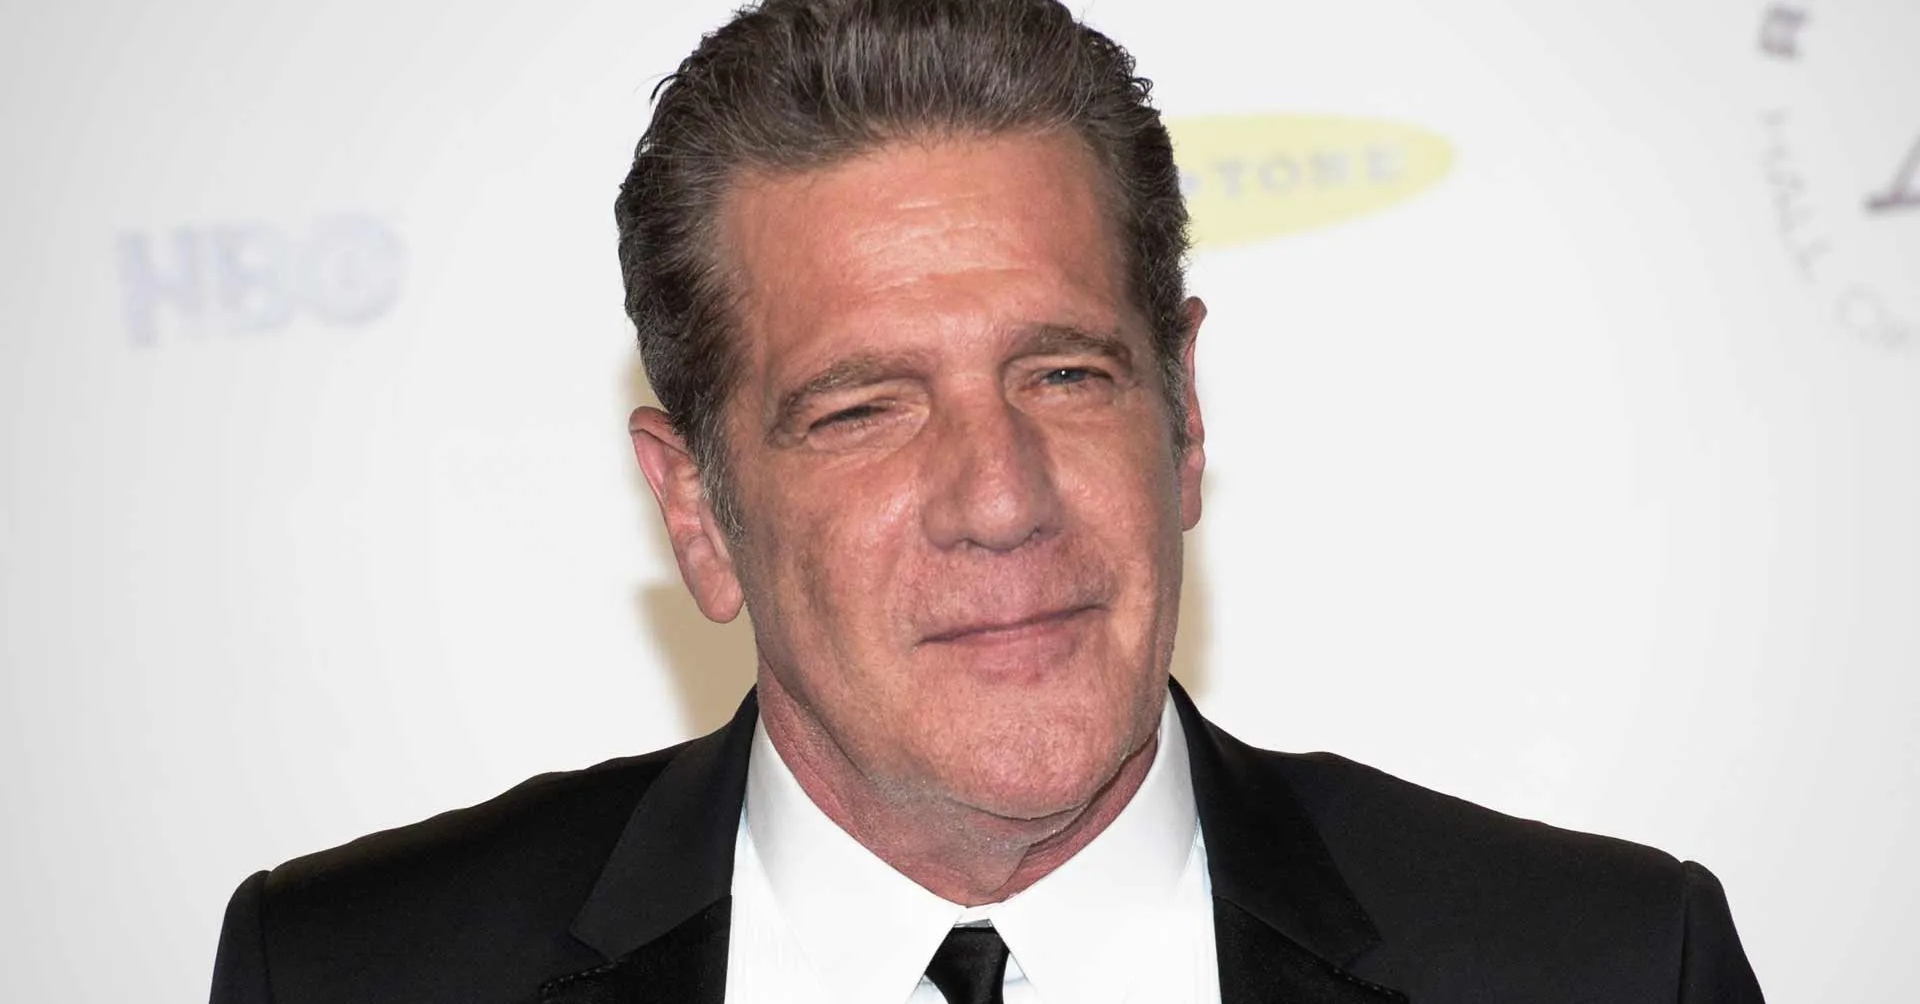 Widow of Eagles Co-Founder Glenn Frey Accused of Refusing to Hand Over Band Contracts in Wrongful Death Battle